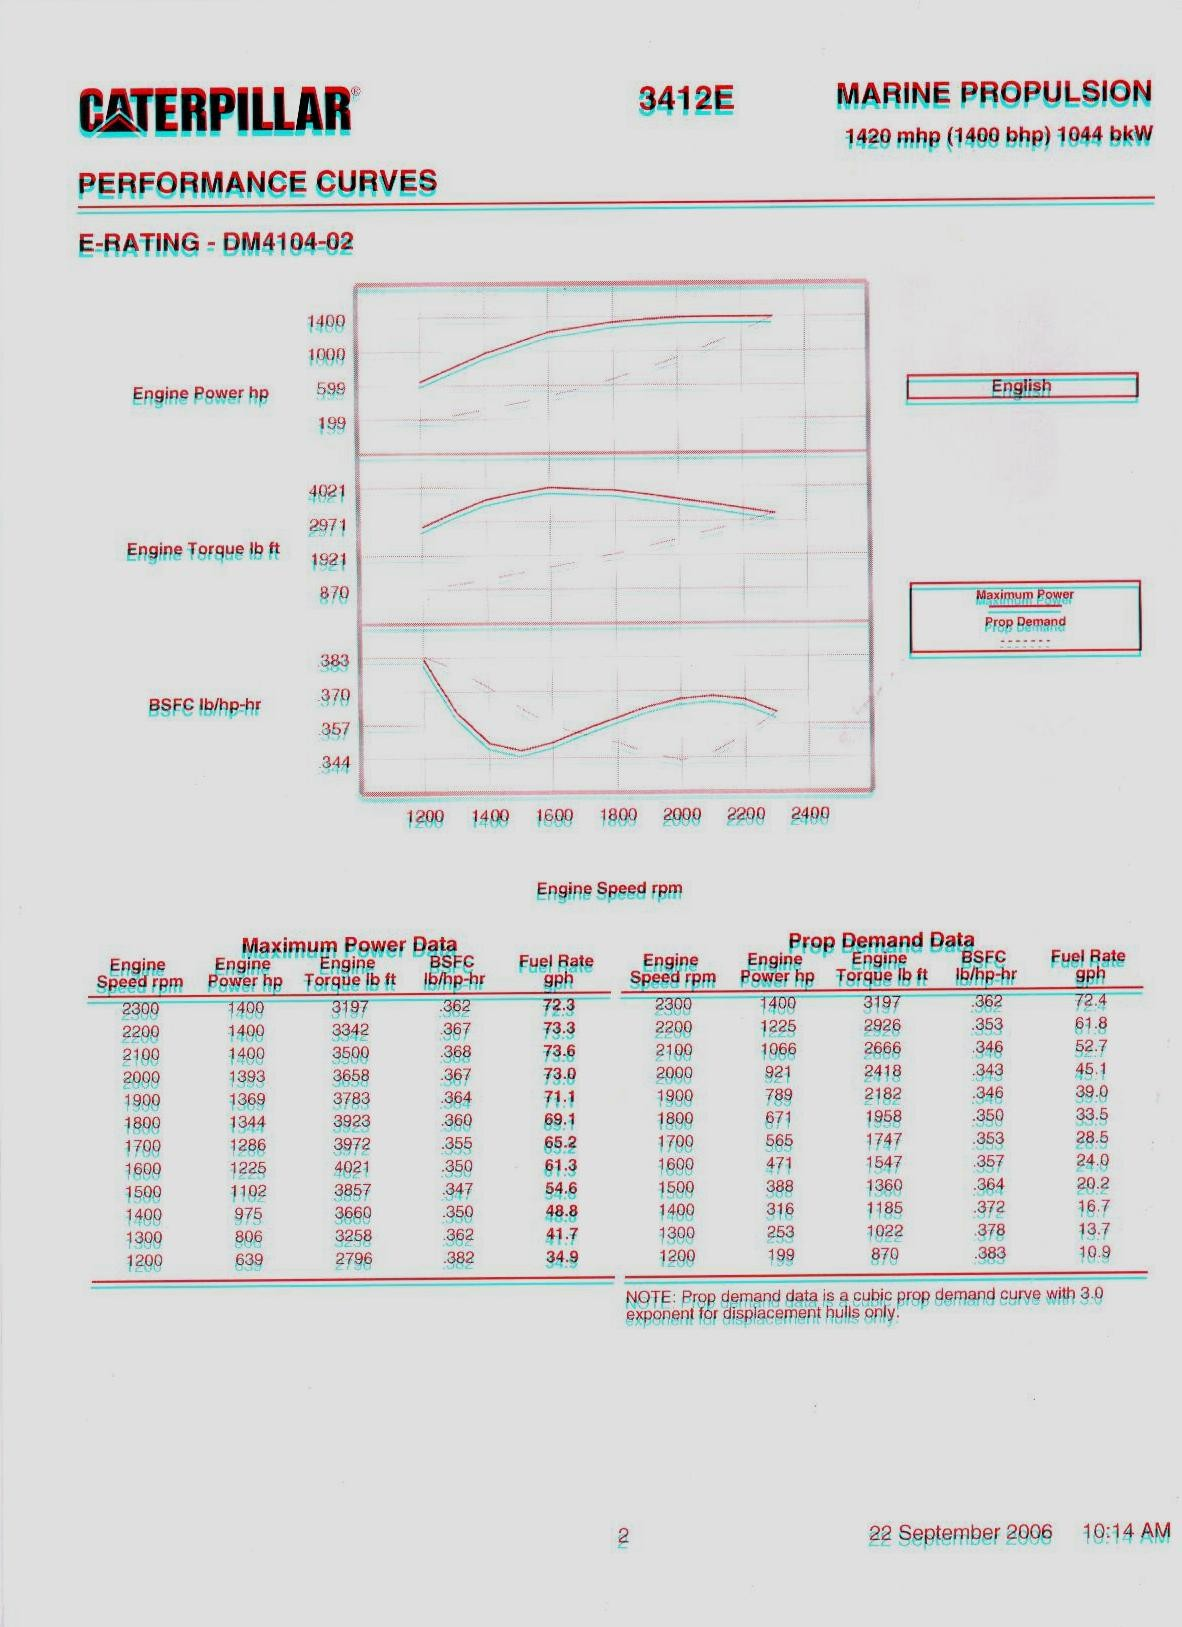 3208 Cat Engine Parts Diagram Find the Best Sel Engine Transmission and Generator Brochures now Of 3208 Cat Engine Parts Diagram